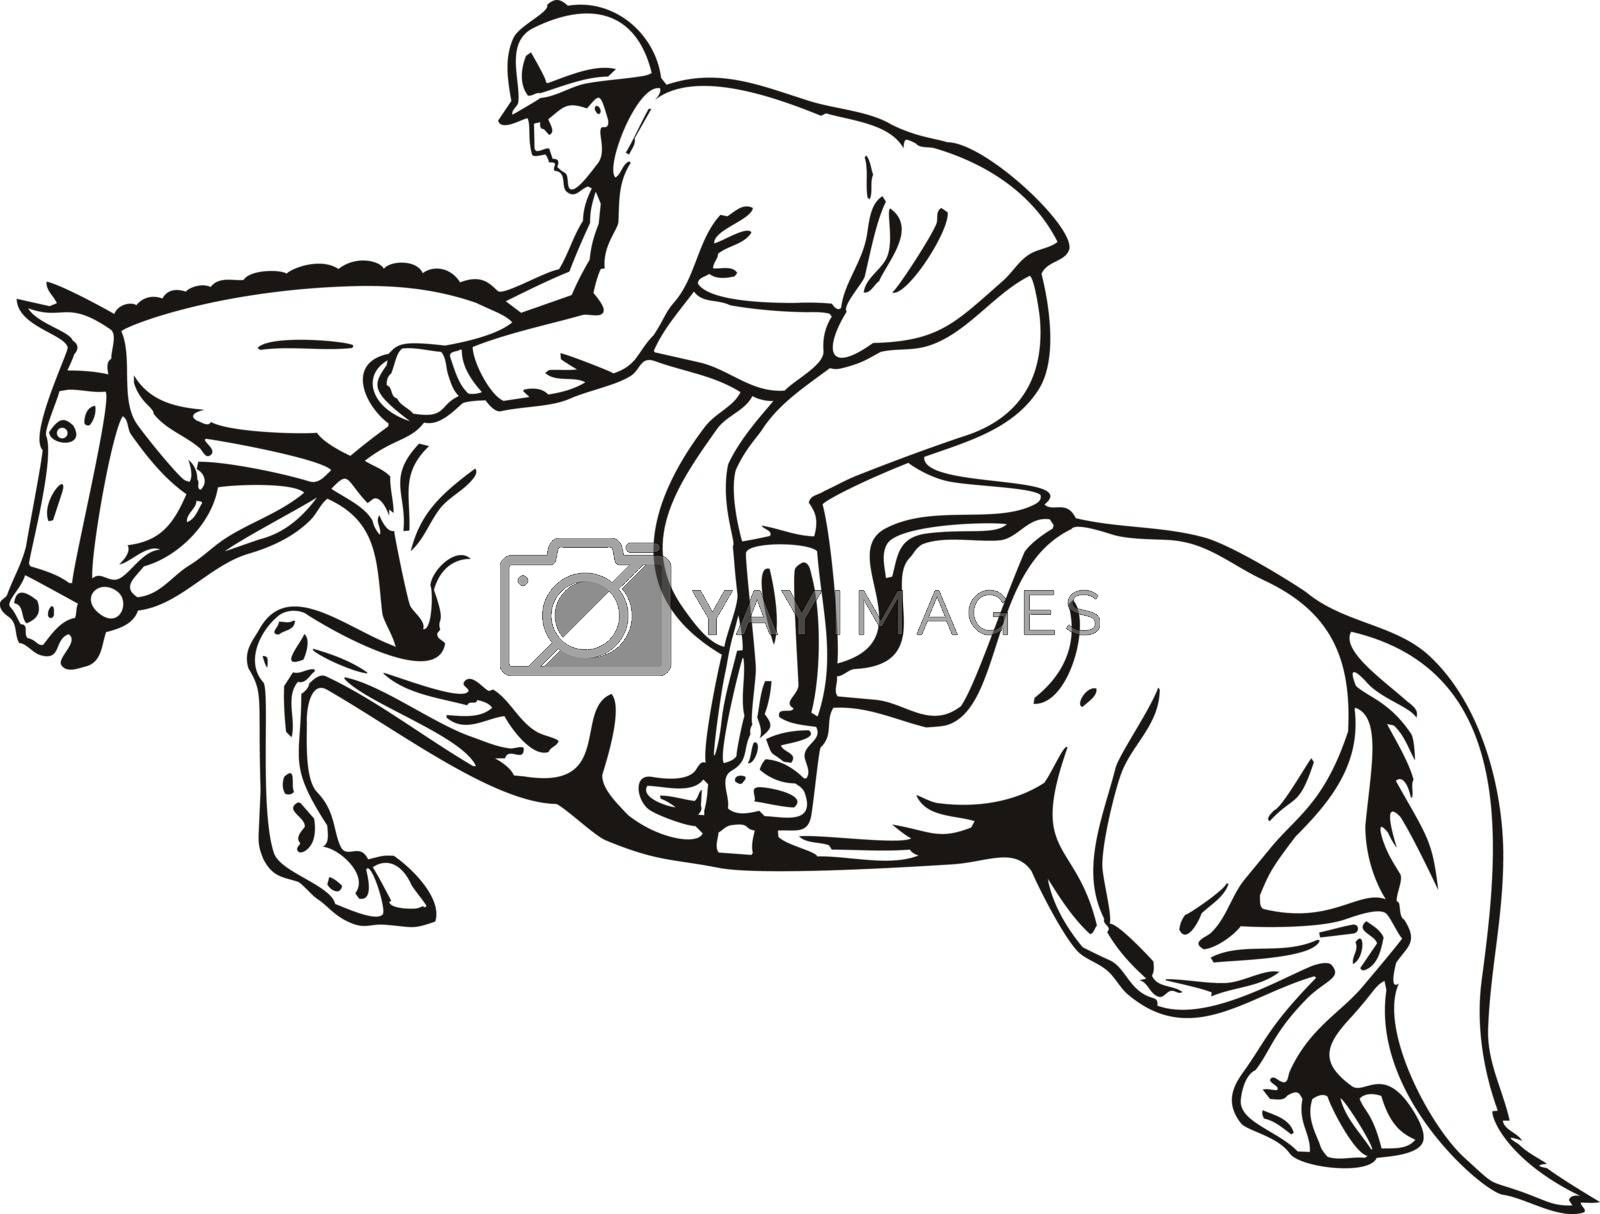 Retro style illustration of an equestrian and horse show jumping, stadium jumping or open jumping, a part of a group of English riding equestrian event viewed from side done in black and white.